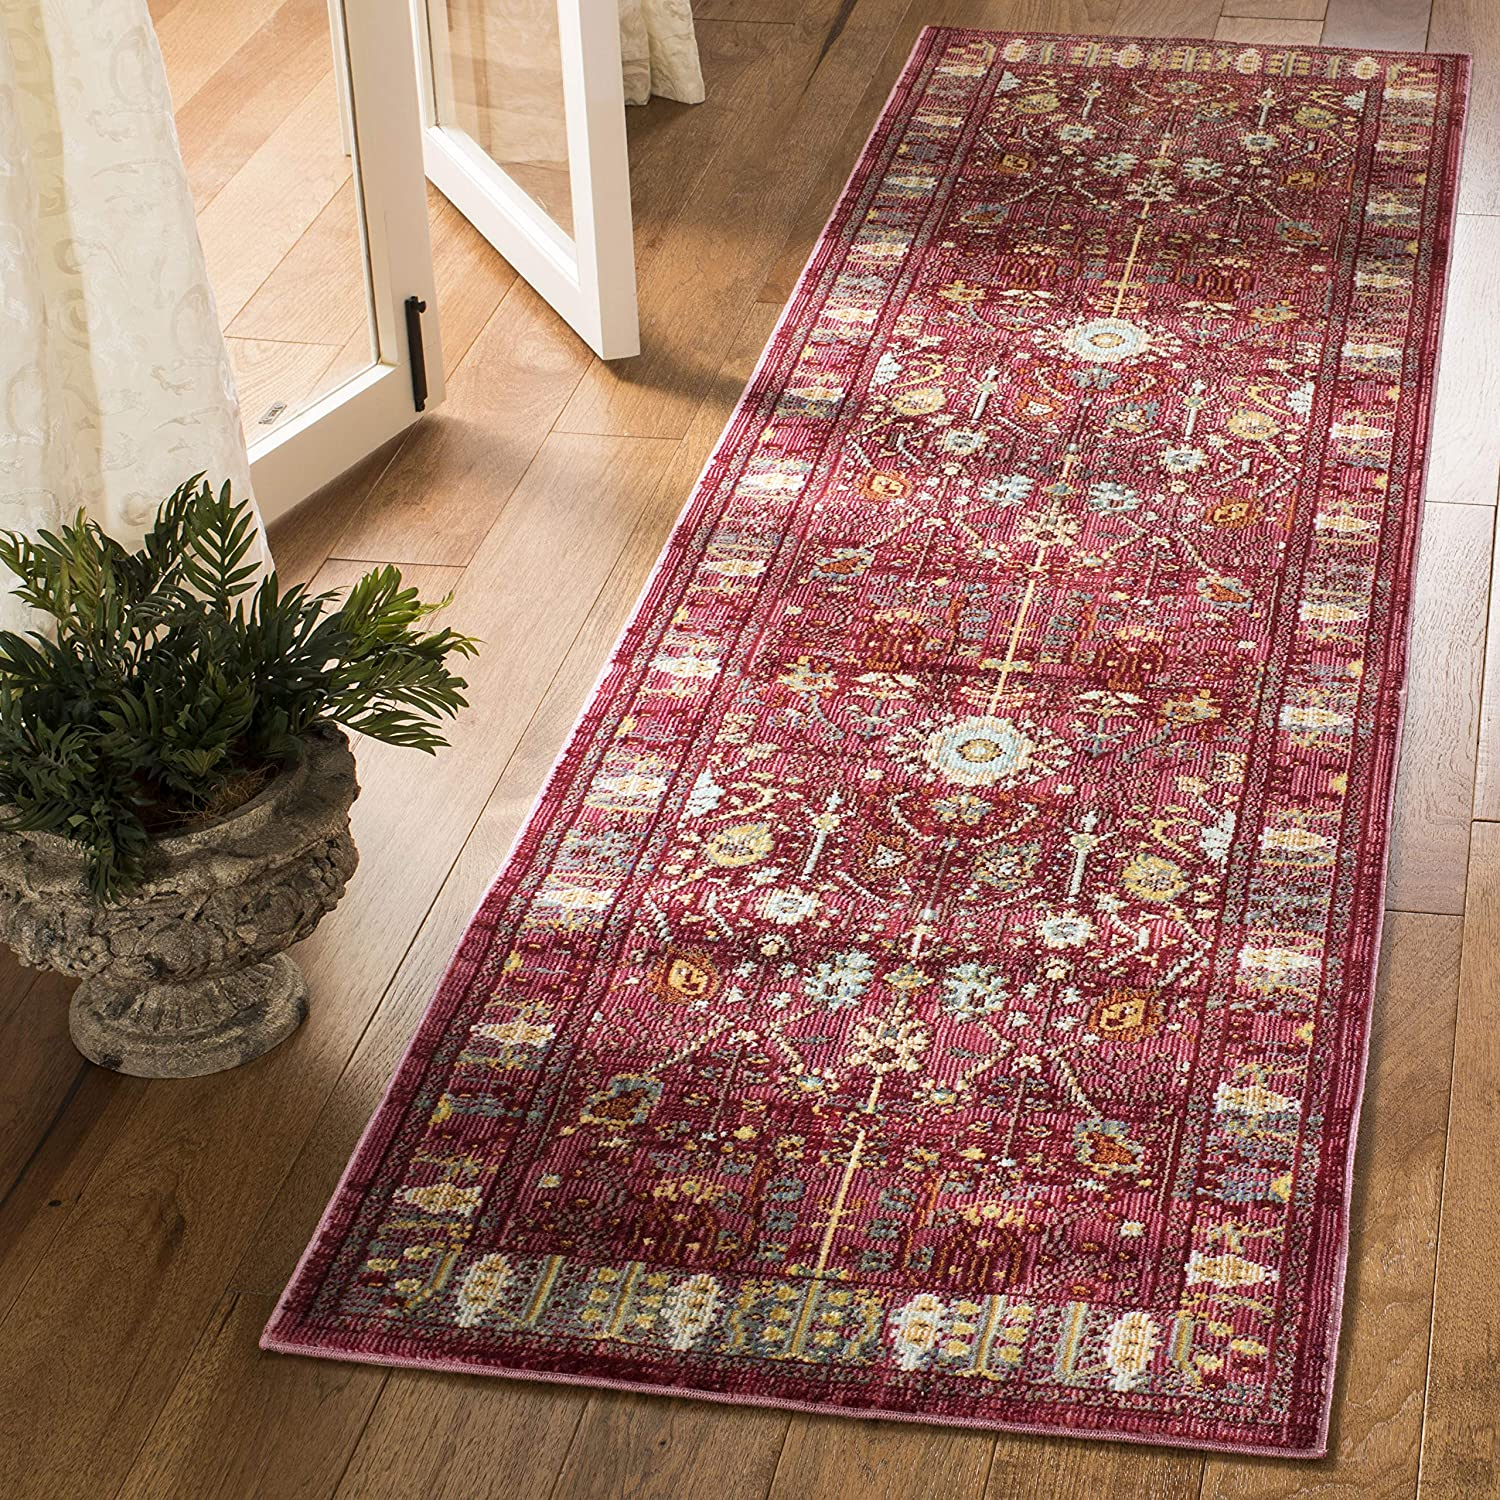 Safavieh Valencia Cheap SALE Start Collection VAL108P Runner New color Boho Chic Distressed